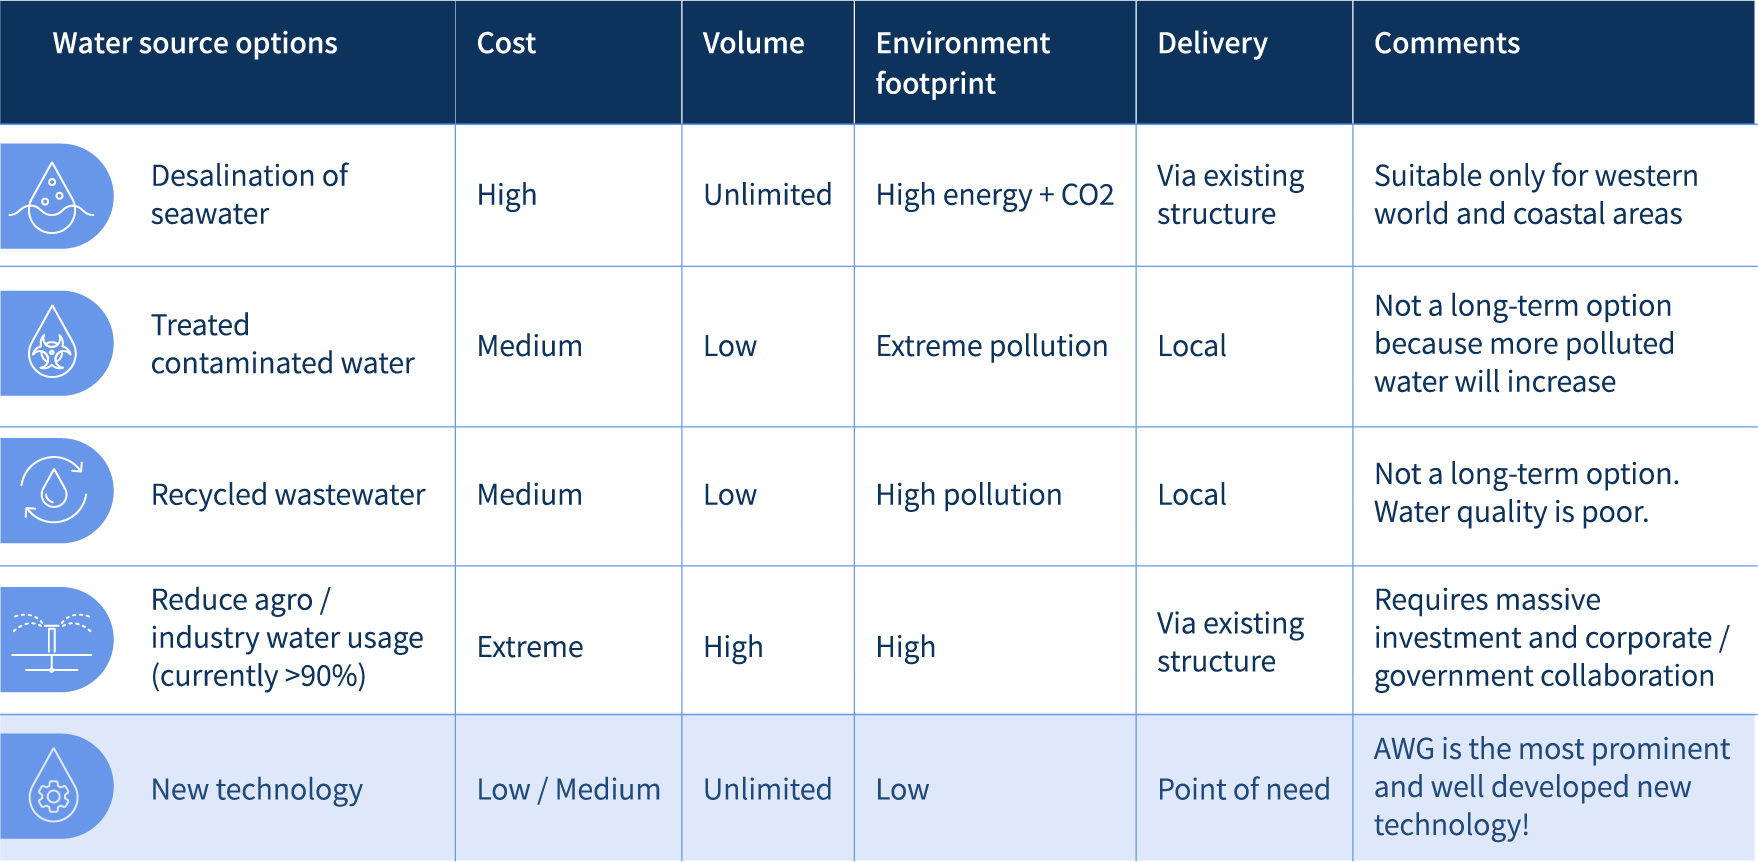 Comparison of costs and benefits for water source options